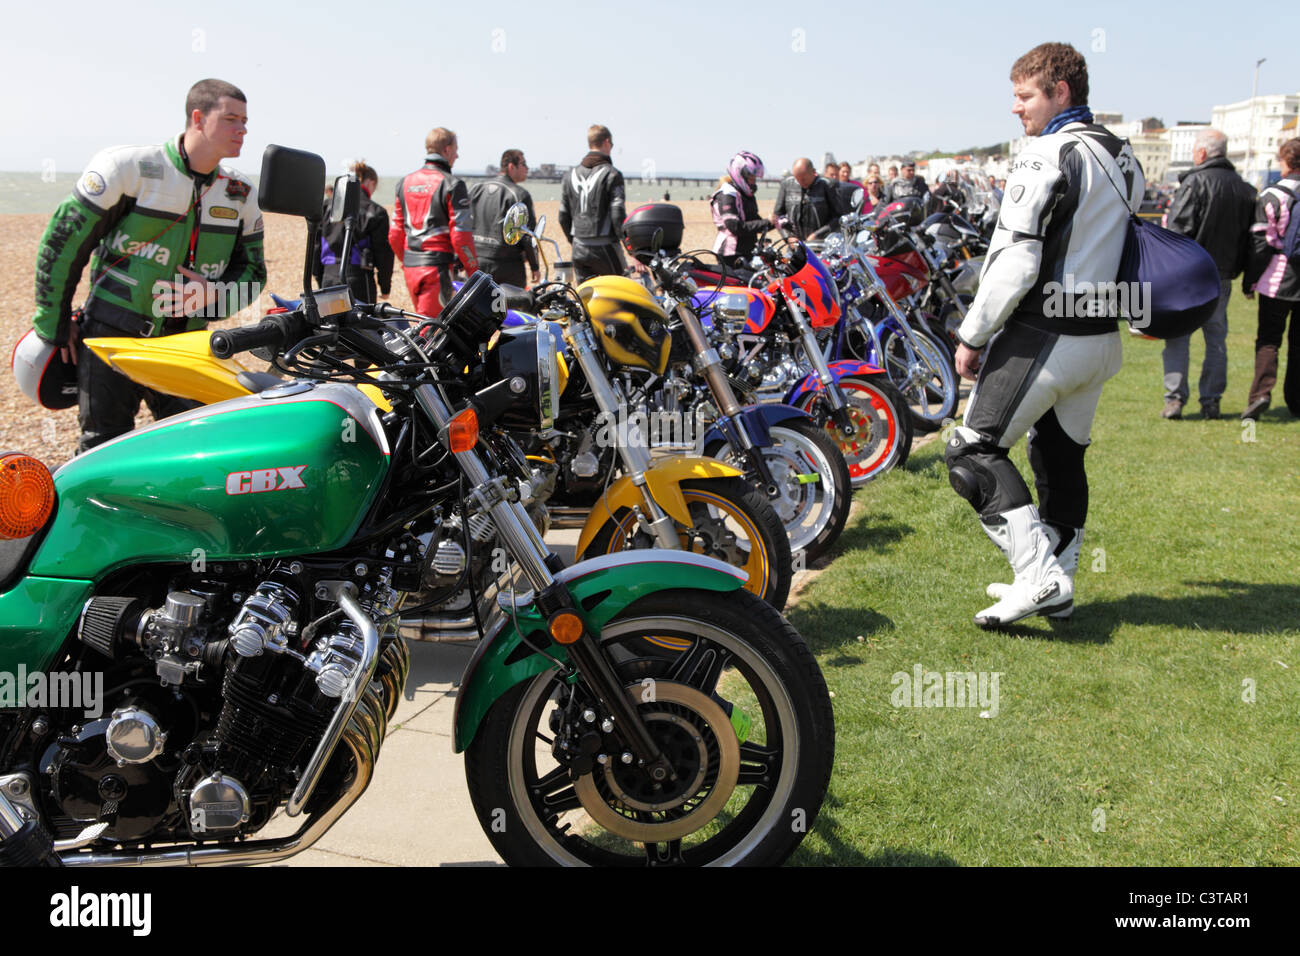 Bikers admiring motorbikes parked on Hastings seafront at the annual May Day motorbike rally 'Bike1066' - Stock Image